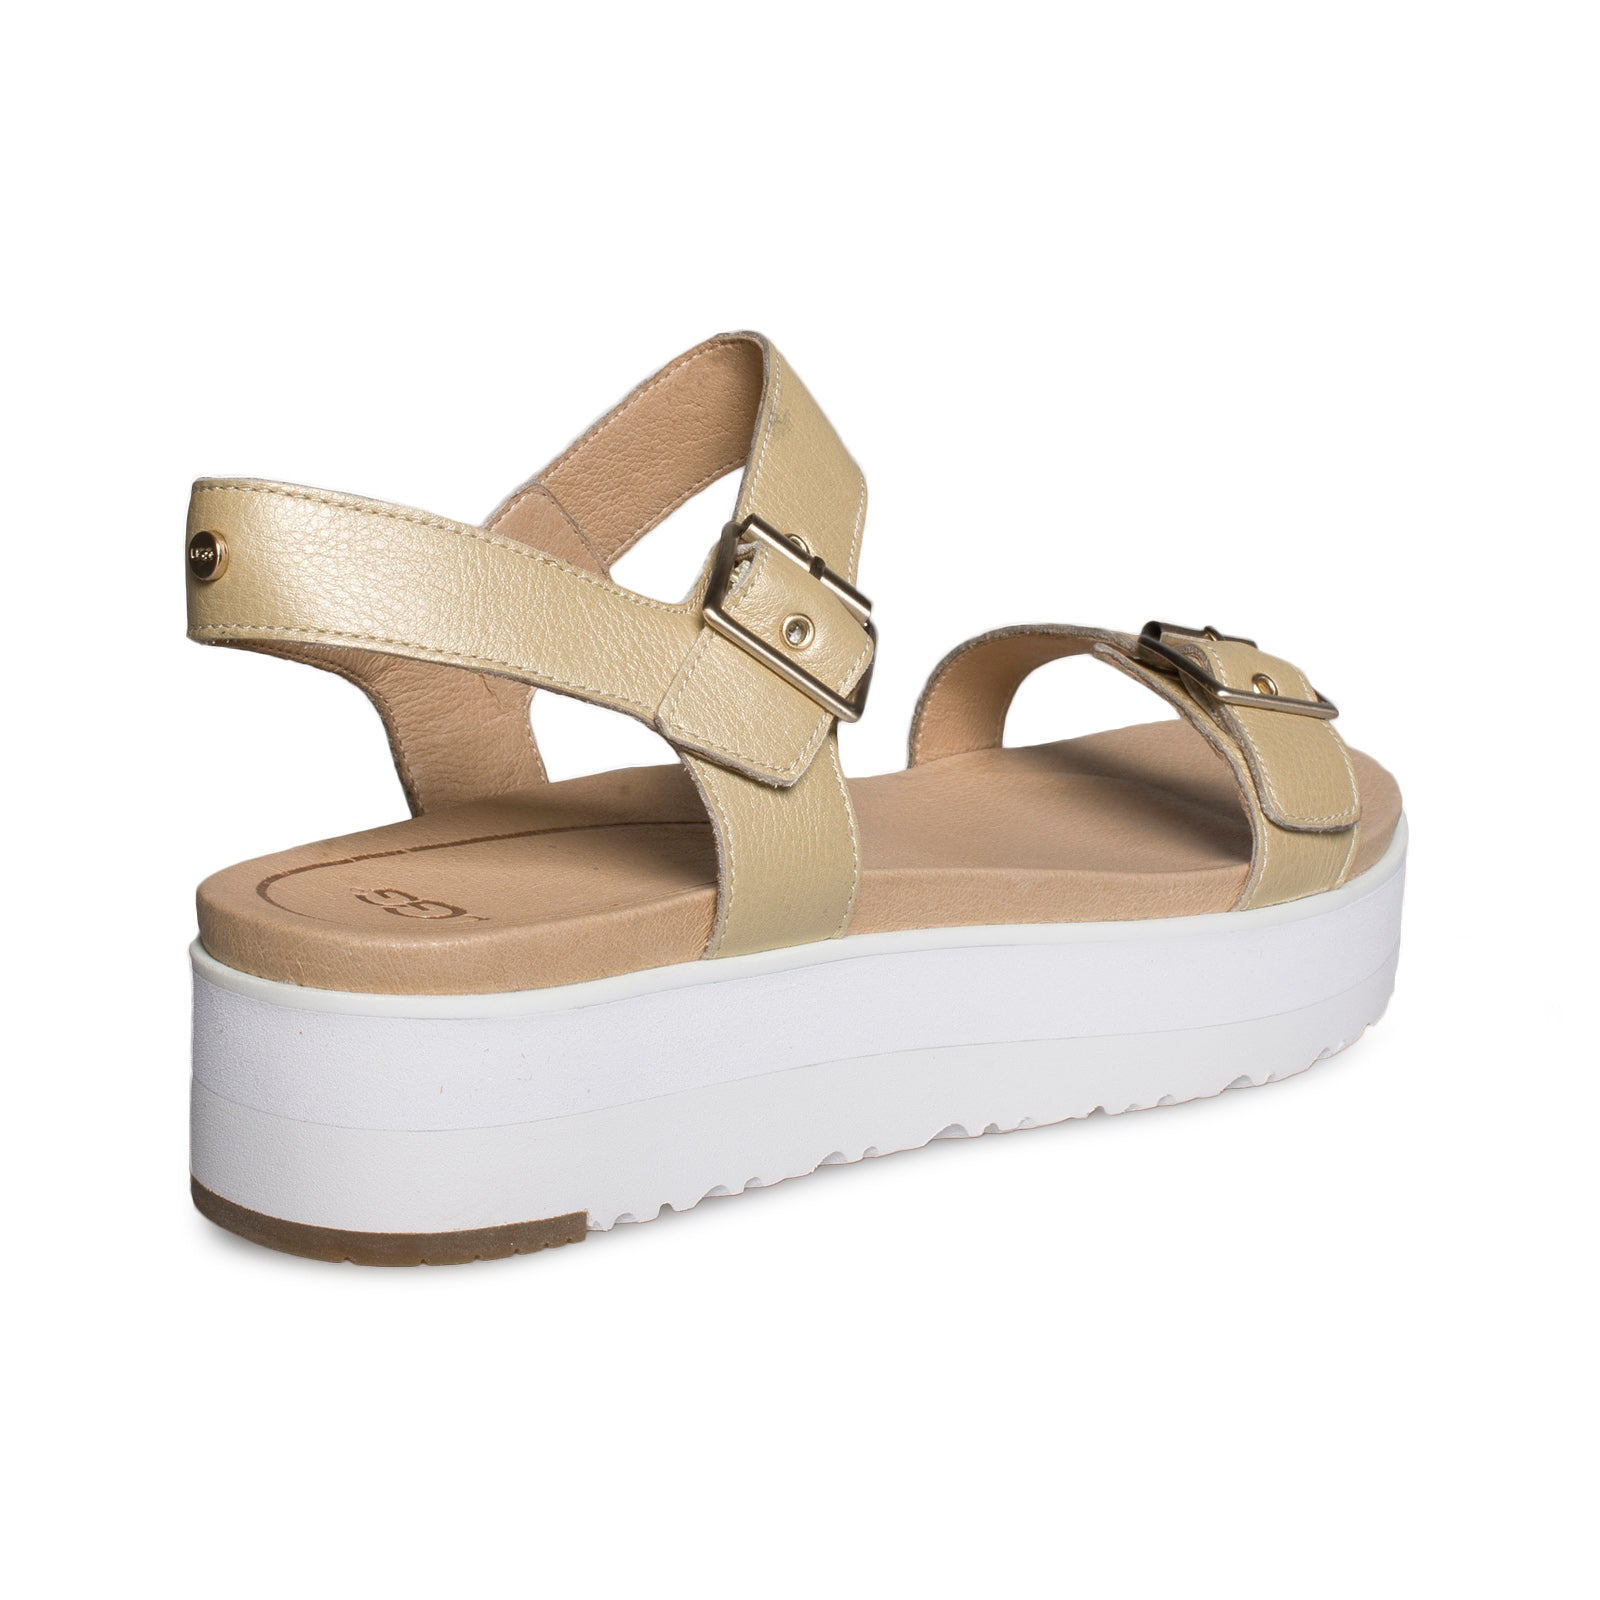 a31d8aacb22 Women's Sandals Tagged